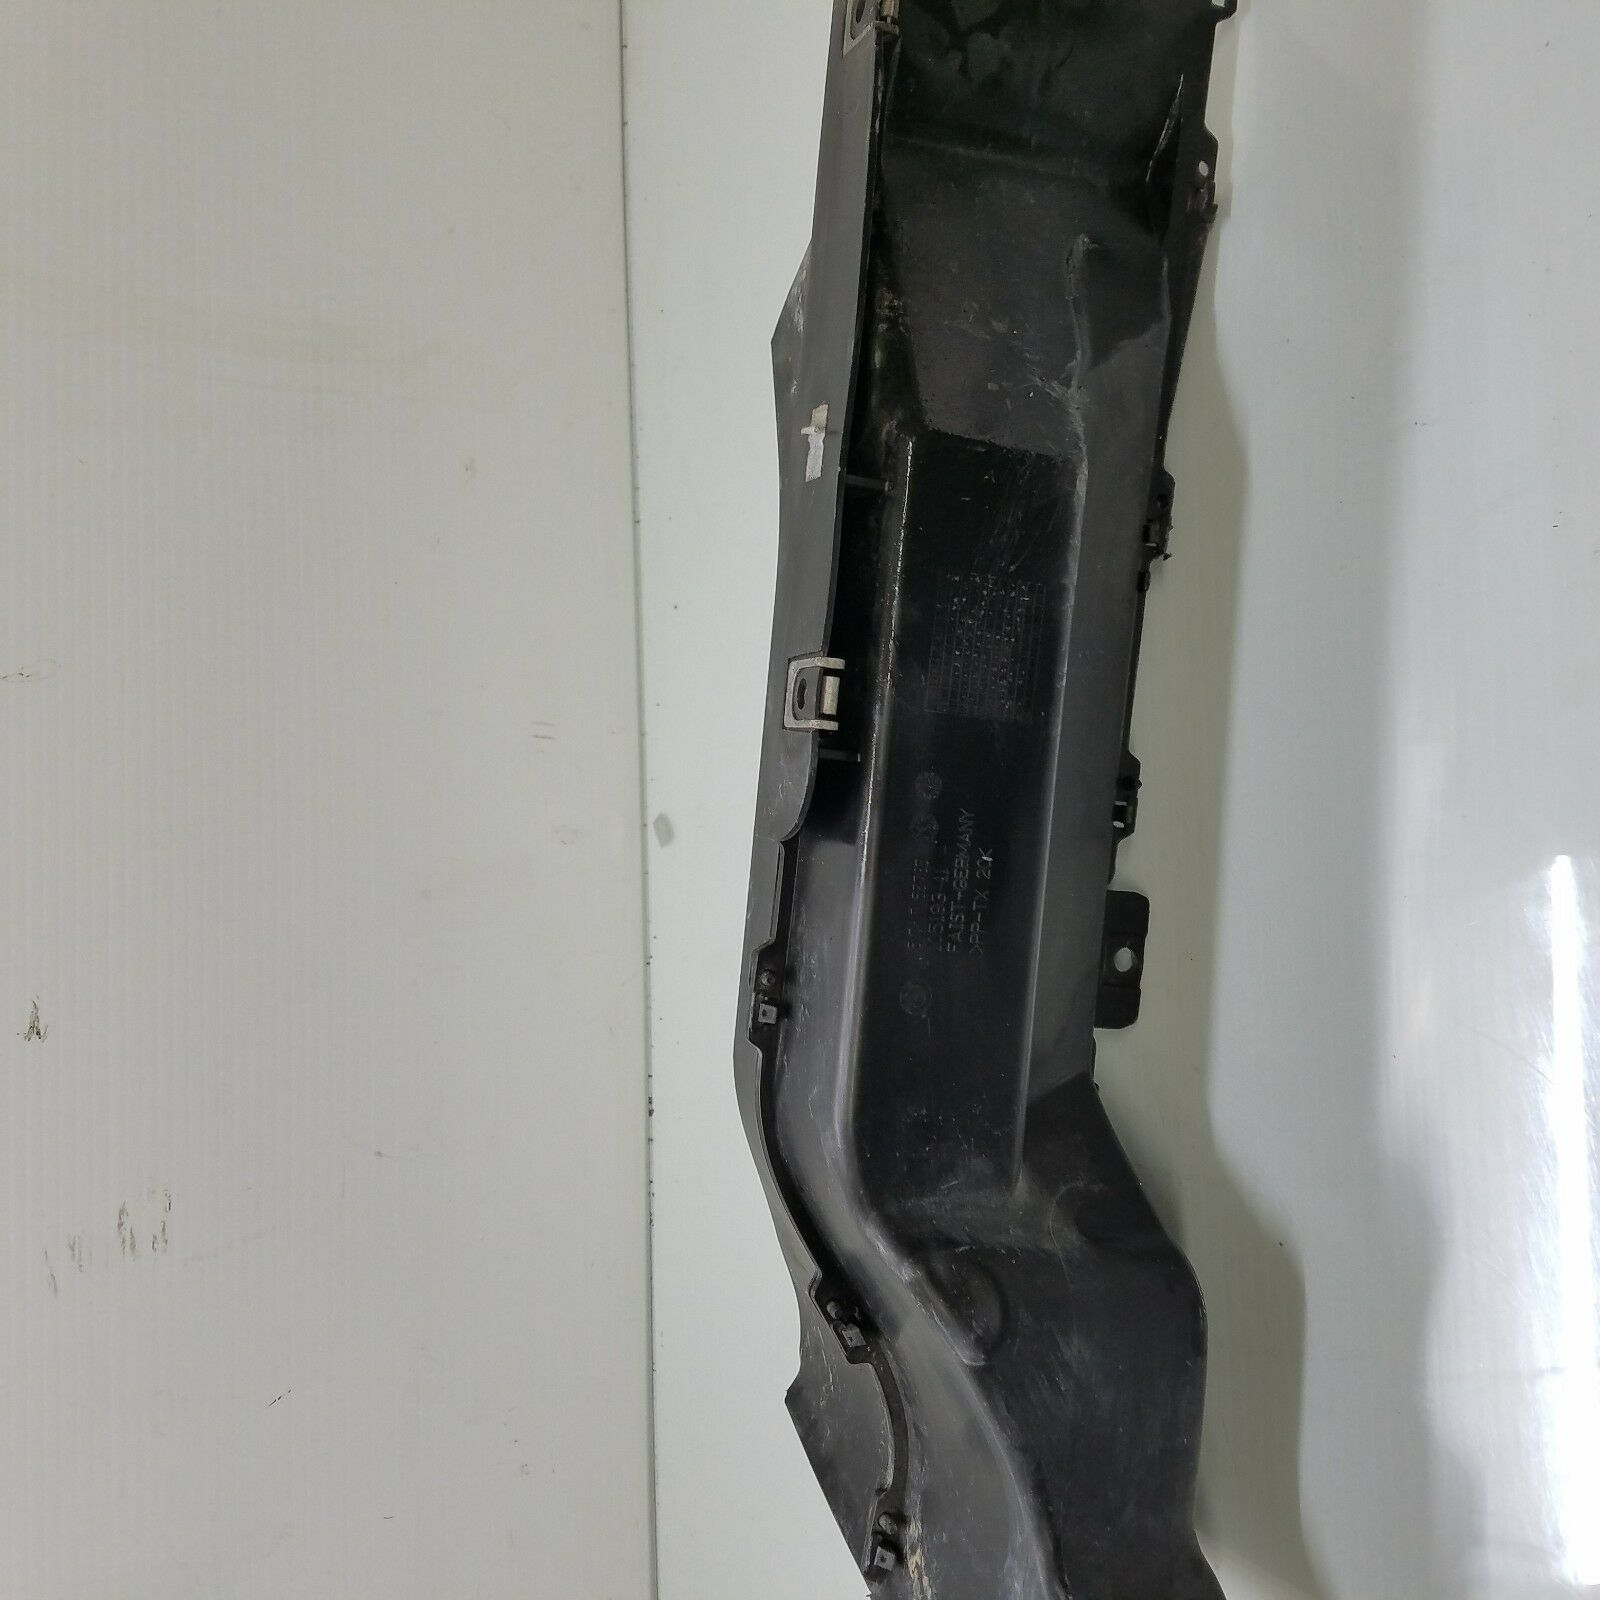 2006-2008 BMW 750i 750Li FRONT LEFT AIR INTAKE DUCT TUBE OEM 7153783 Does not apply